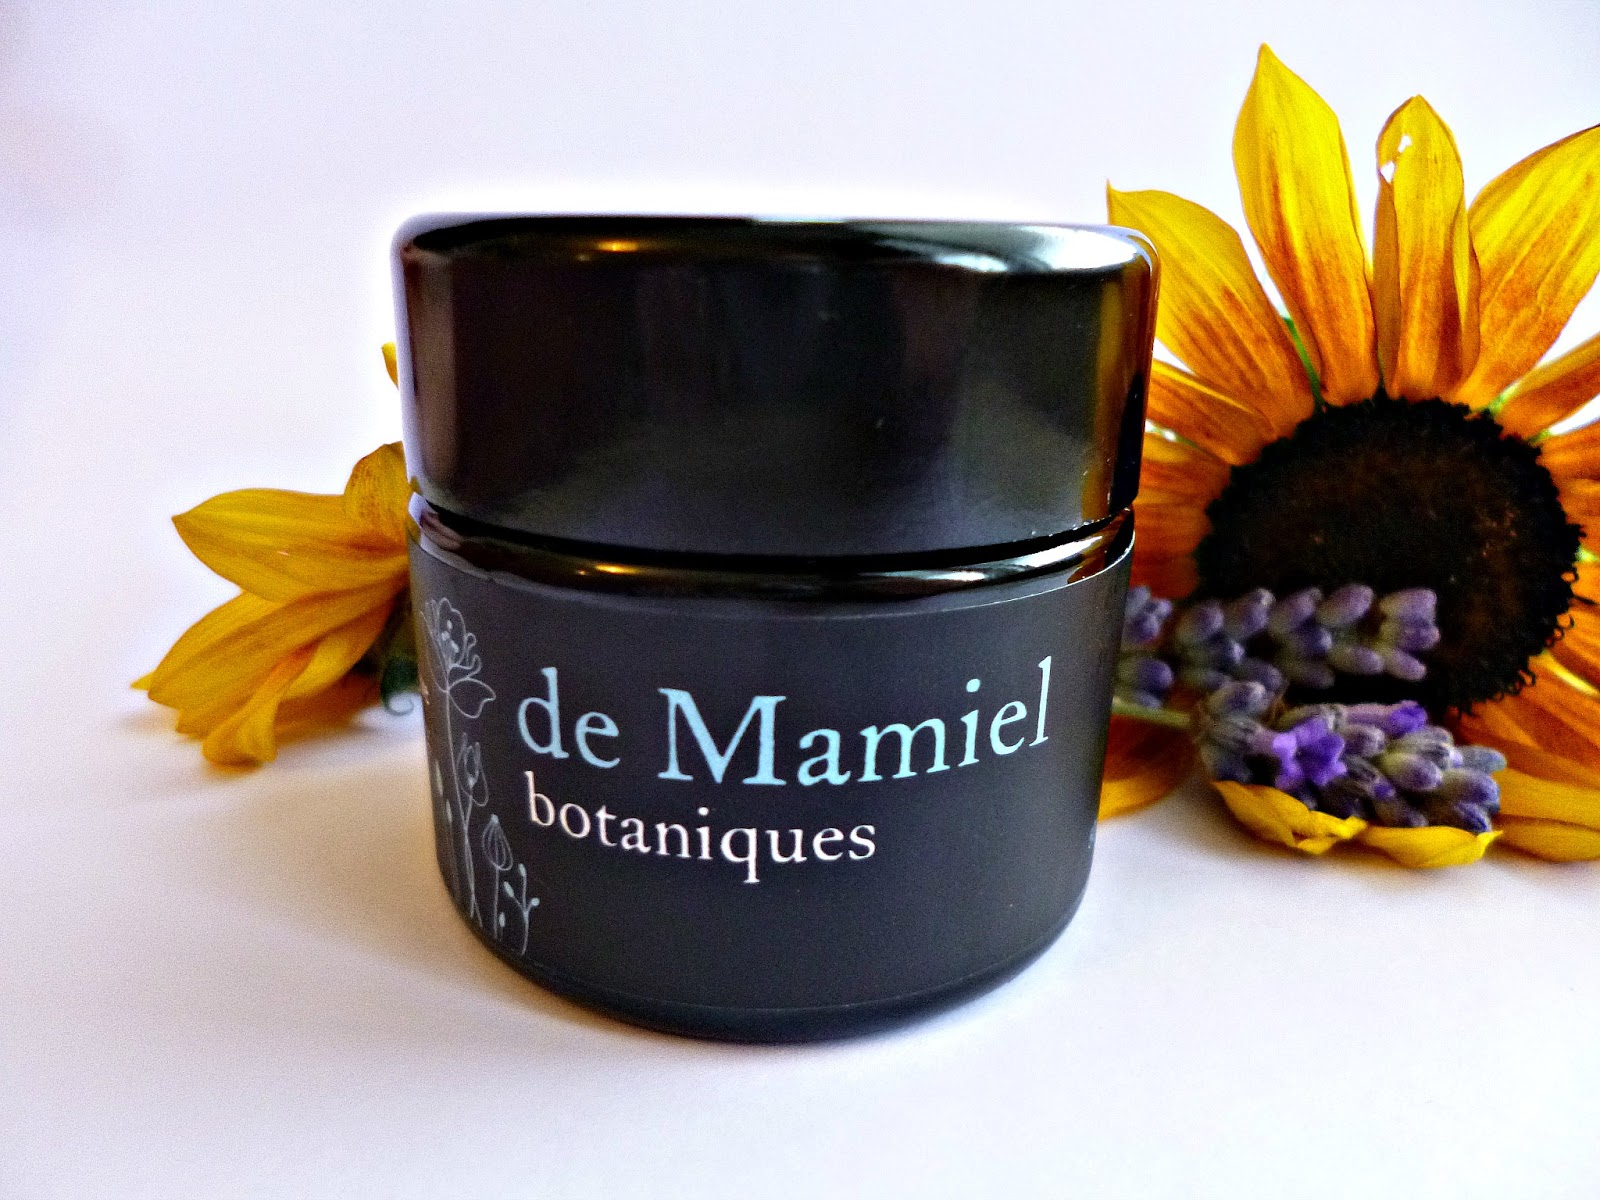 Product Obsession – De Mamiel Botaniques Restorative cleansing balm